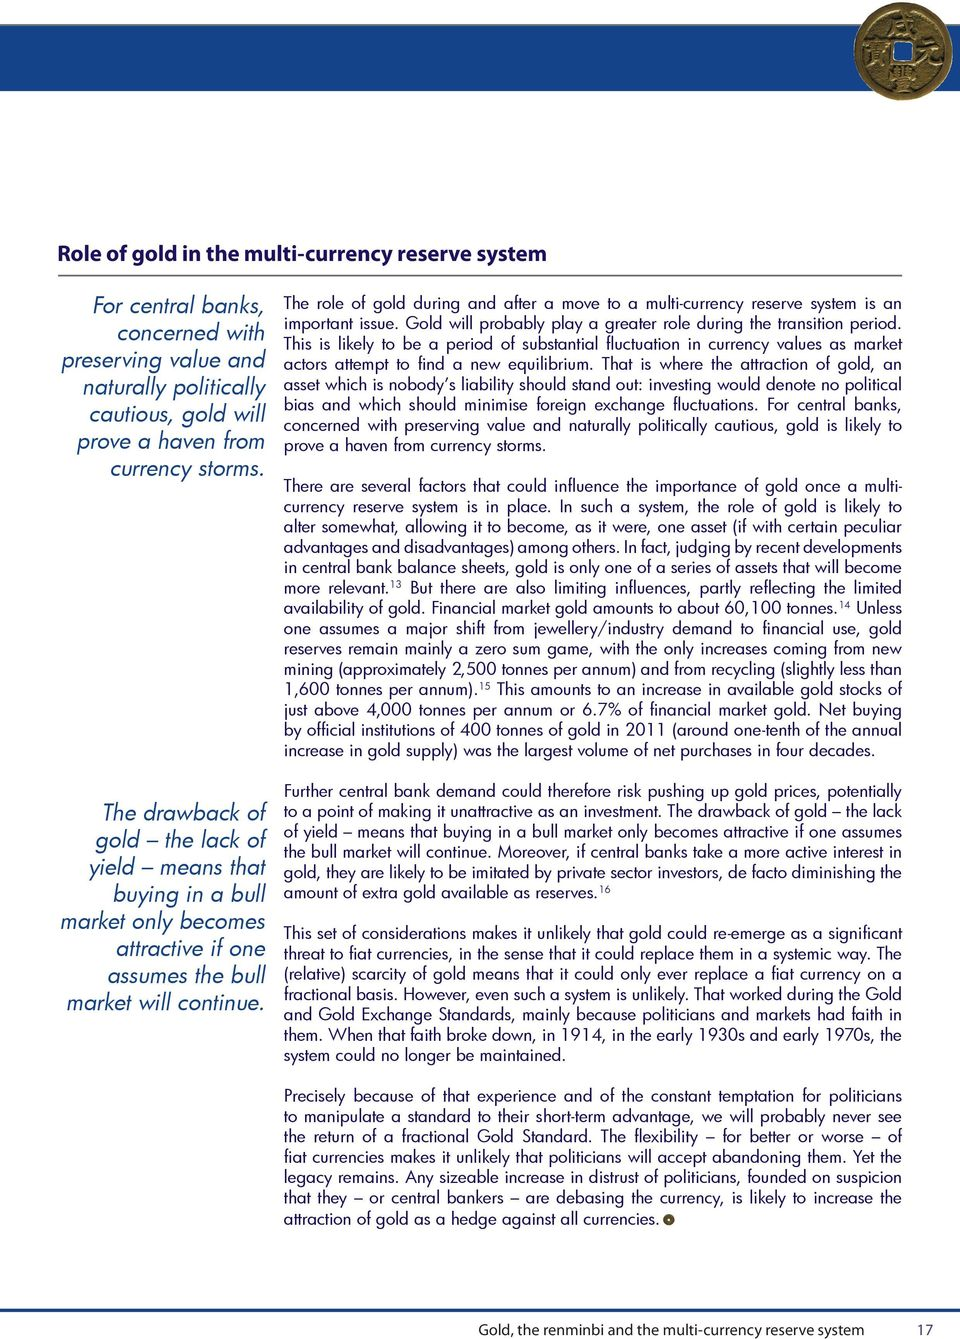 The role of gold during and after a move to a multi-currency reserve system is an important issue. Gold will probably play a greater role during the transition period.